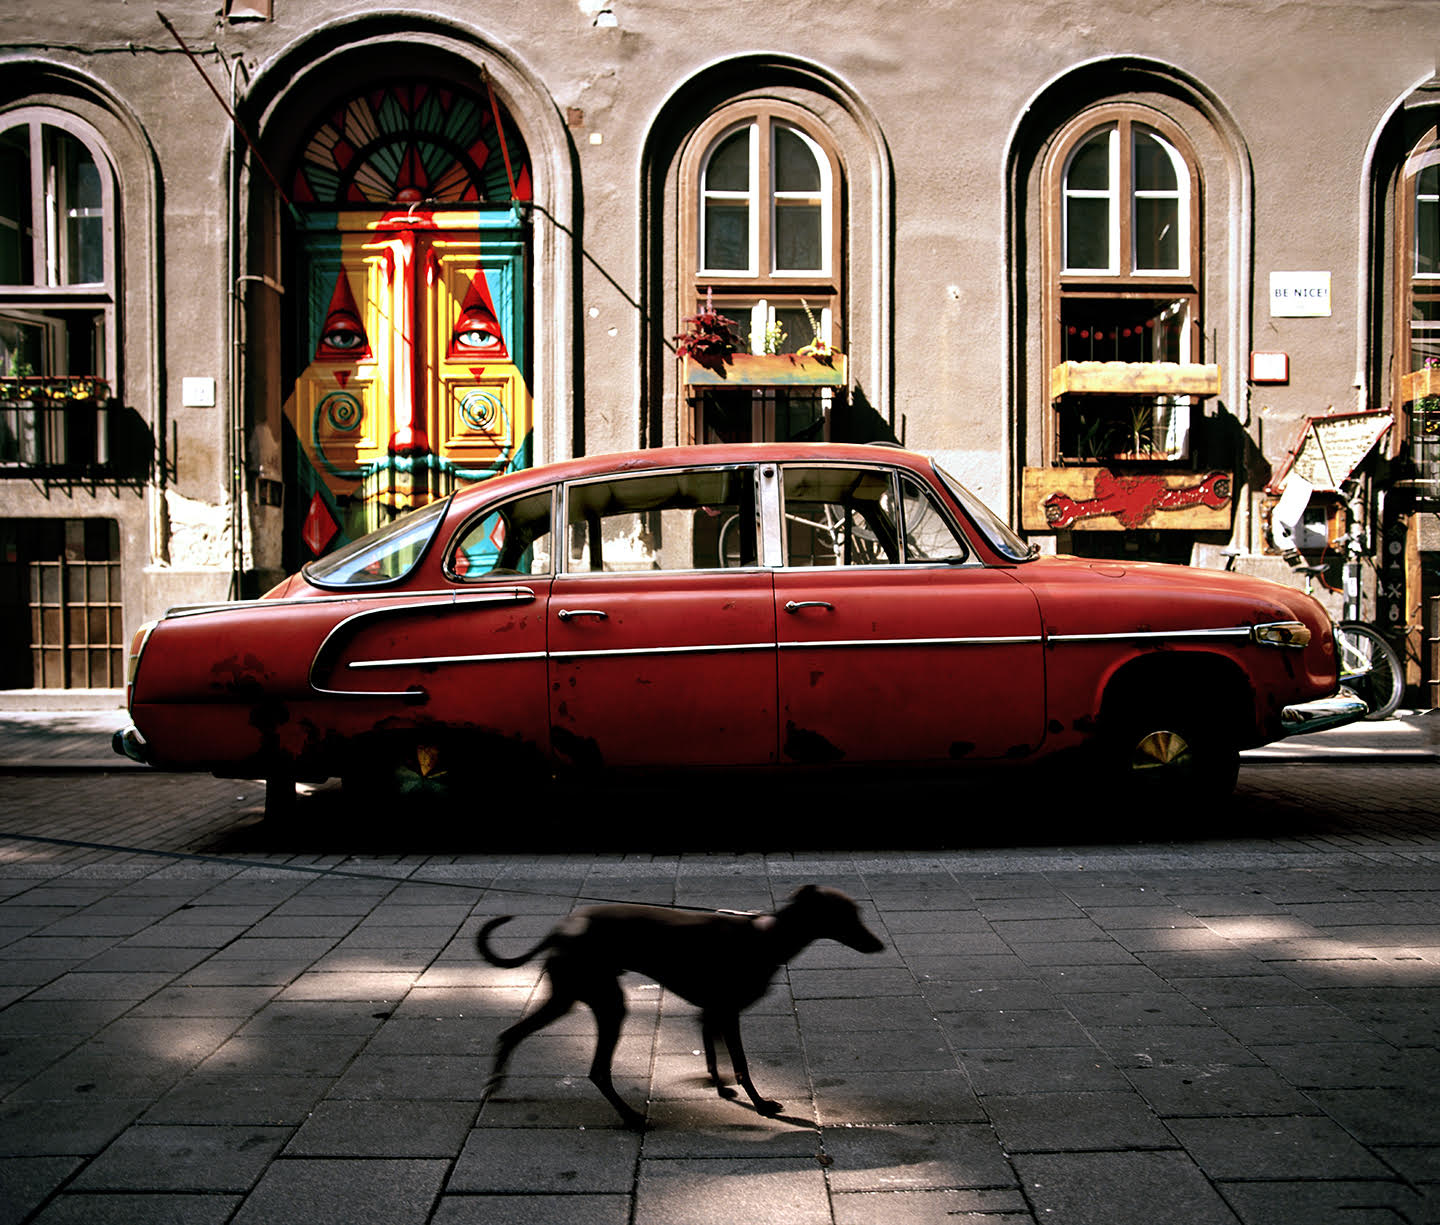 """""""So many of my favourite things are in this photo. From the wonderful styling of the vintage car, to the graffiti on the door, to the small plaque on the right reminding people to be nice. And to have a little whippet photo bombing me was the icing on the cake"""""""